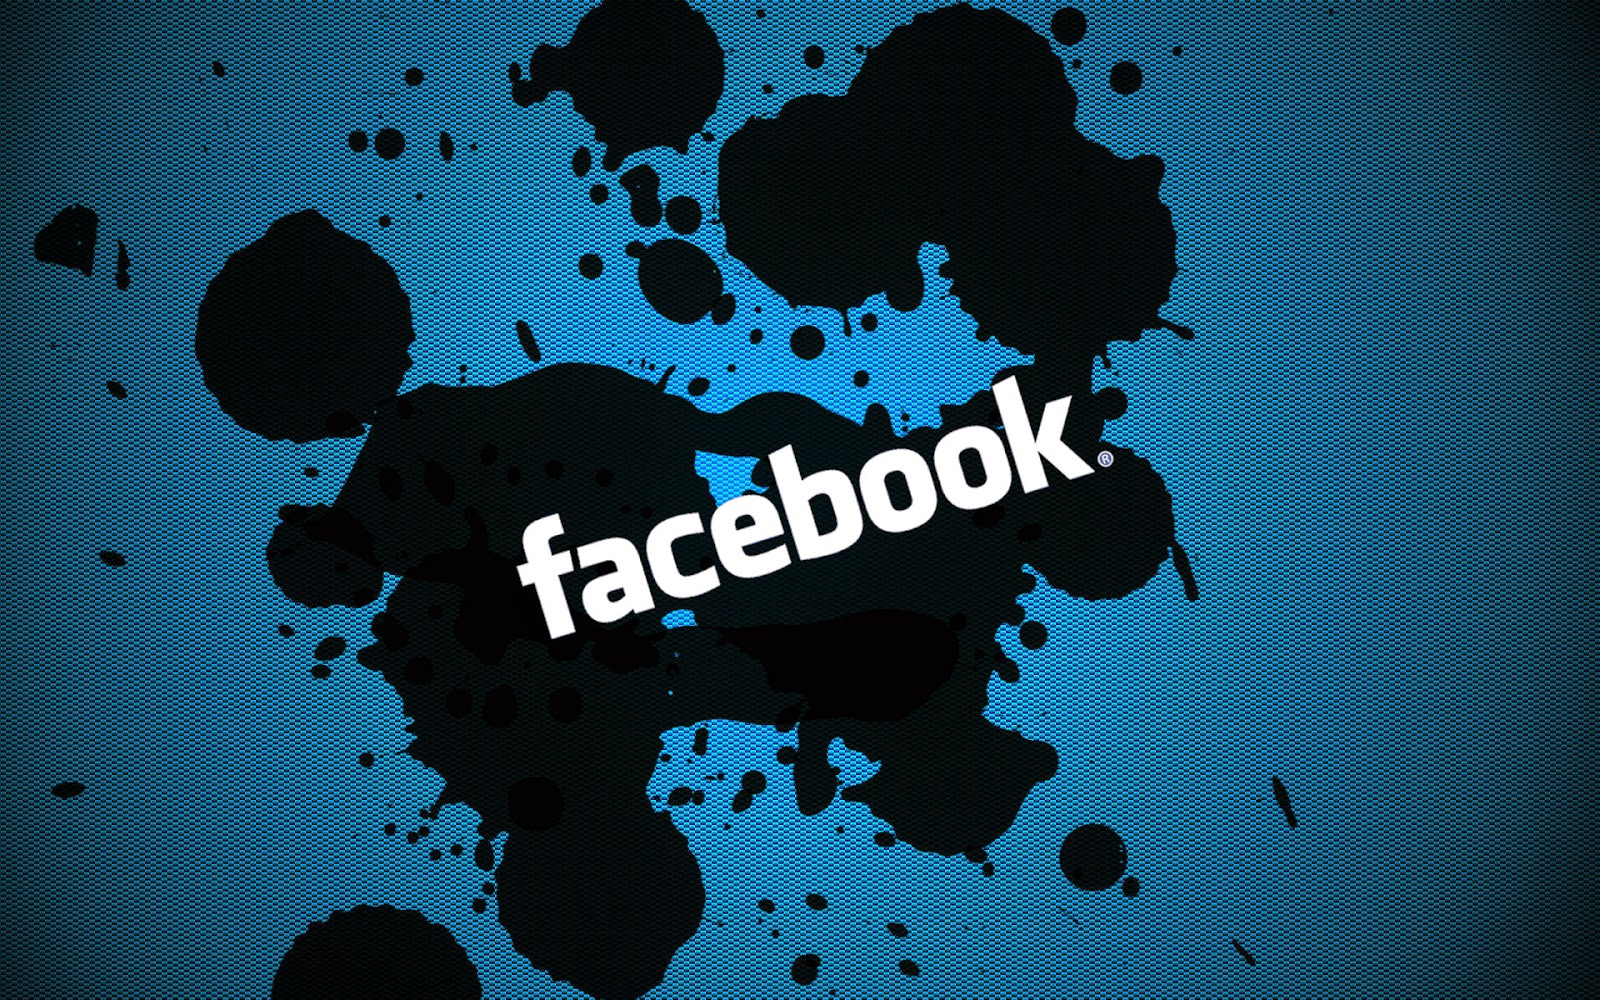 Facebook To Remove Chat To Promote Their Messaging AppIication